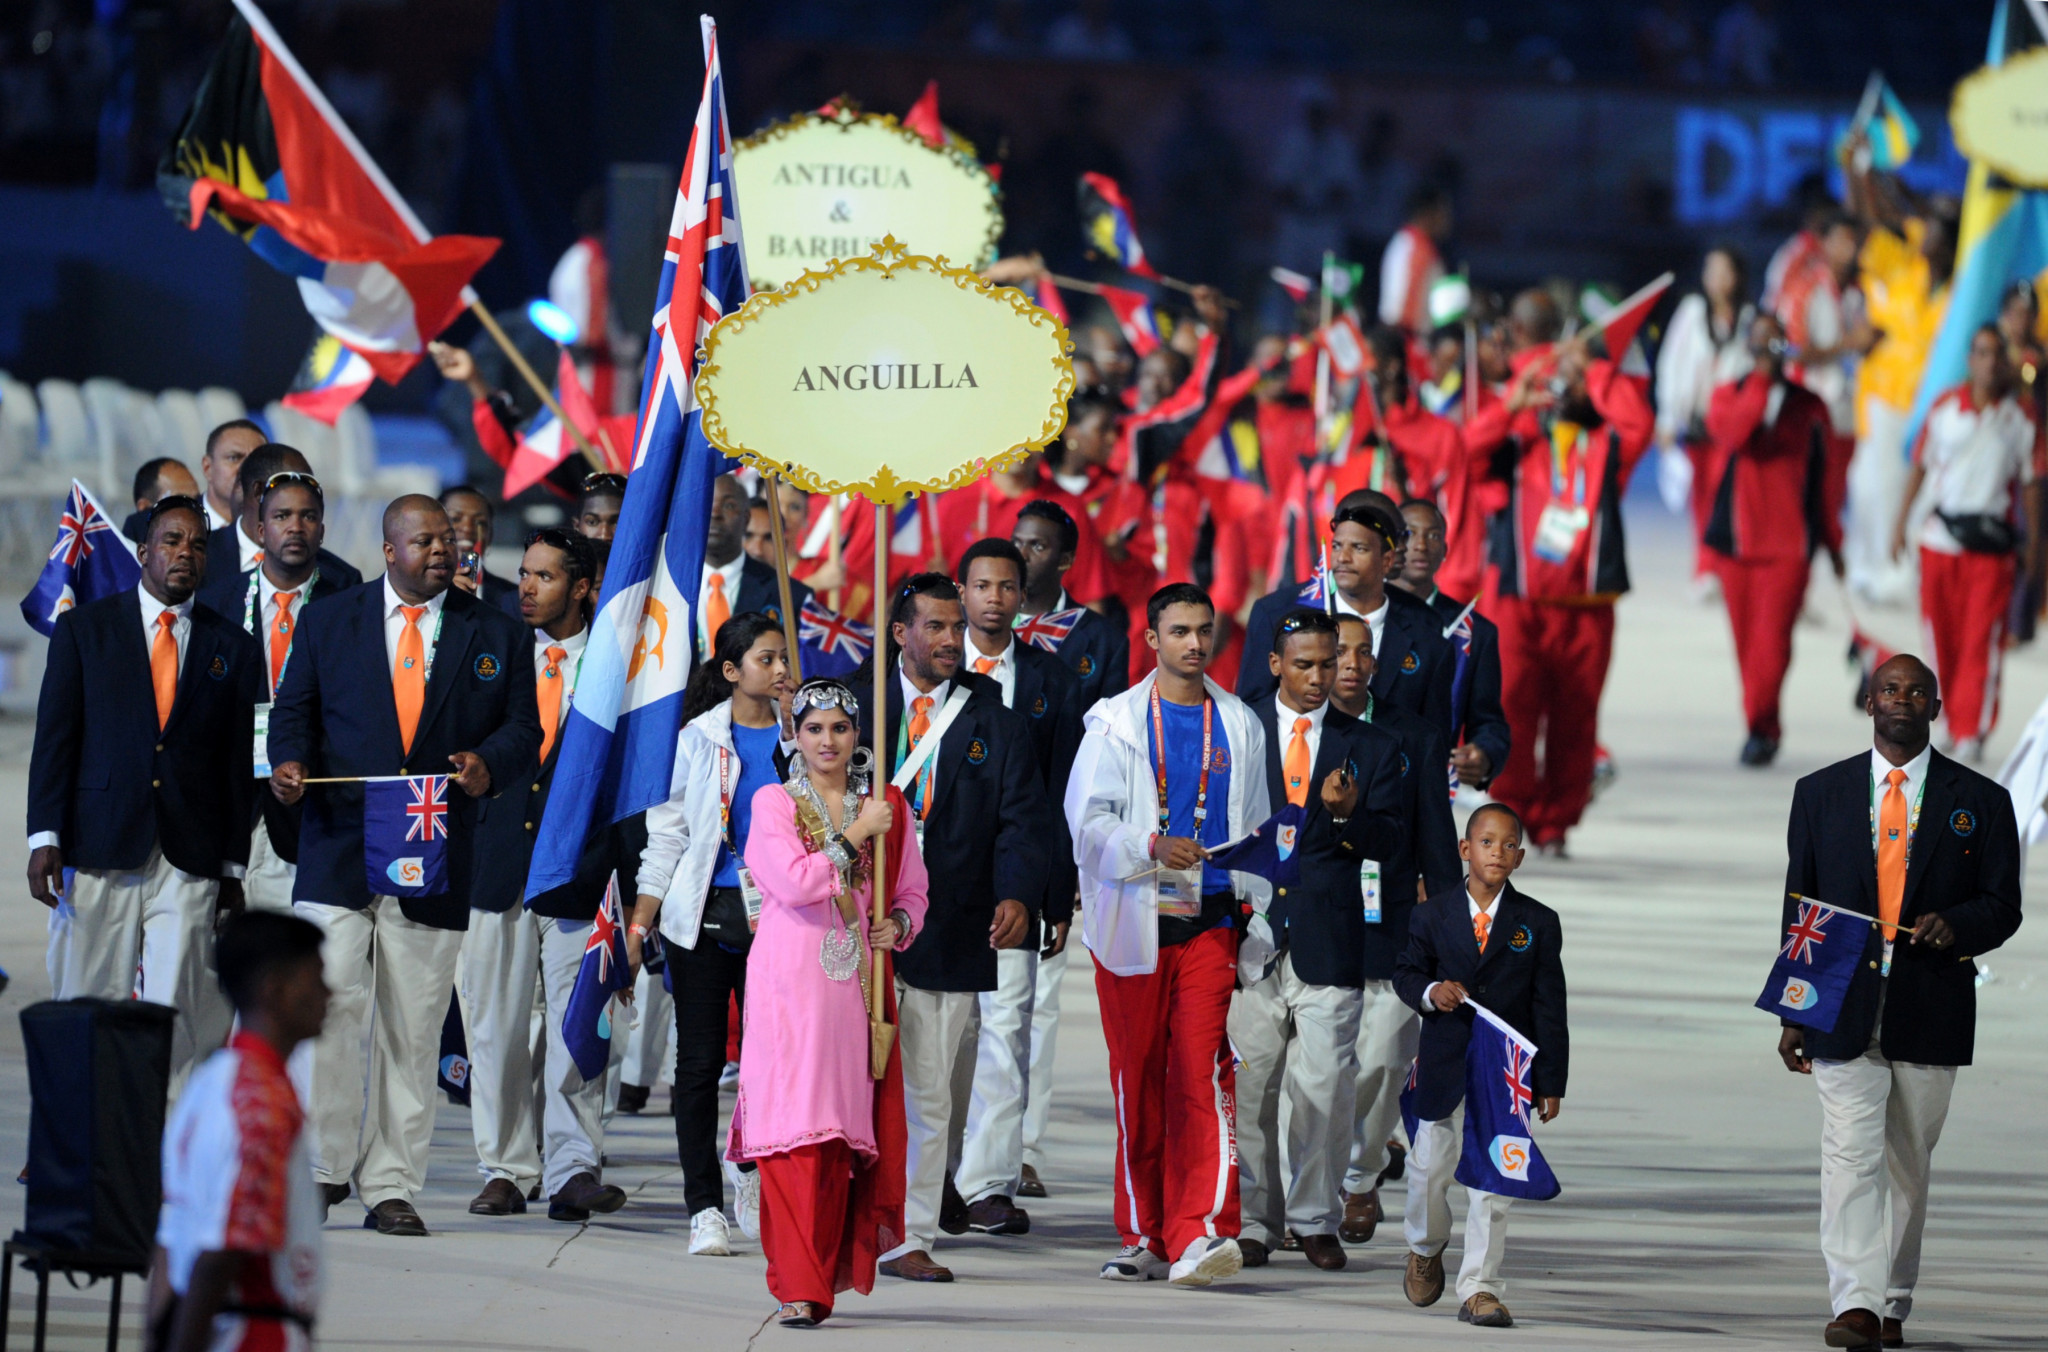 Anguilla at the 2010 Commonwealth Games in New Delhi ©Getty Images